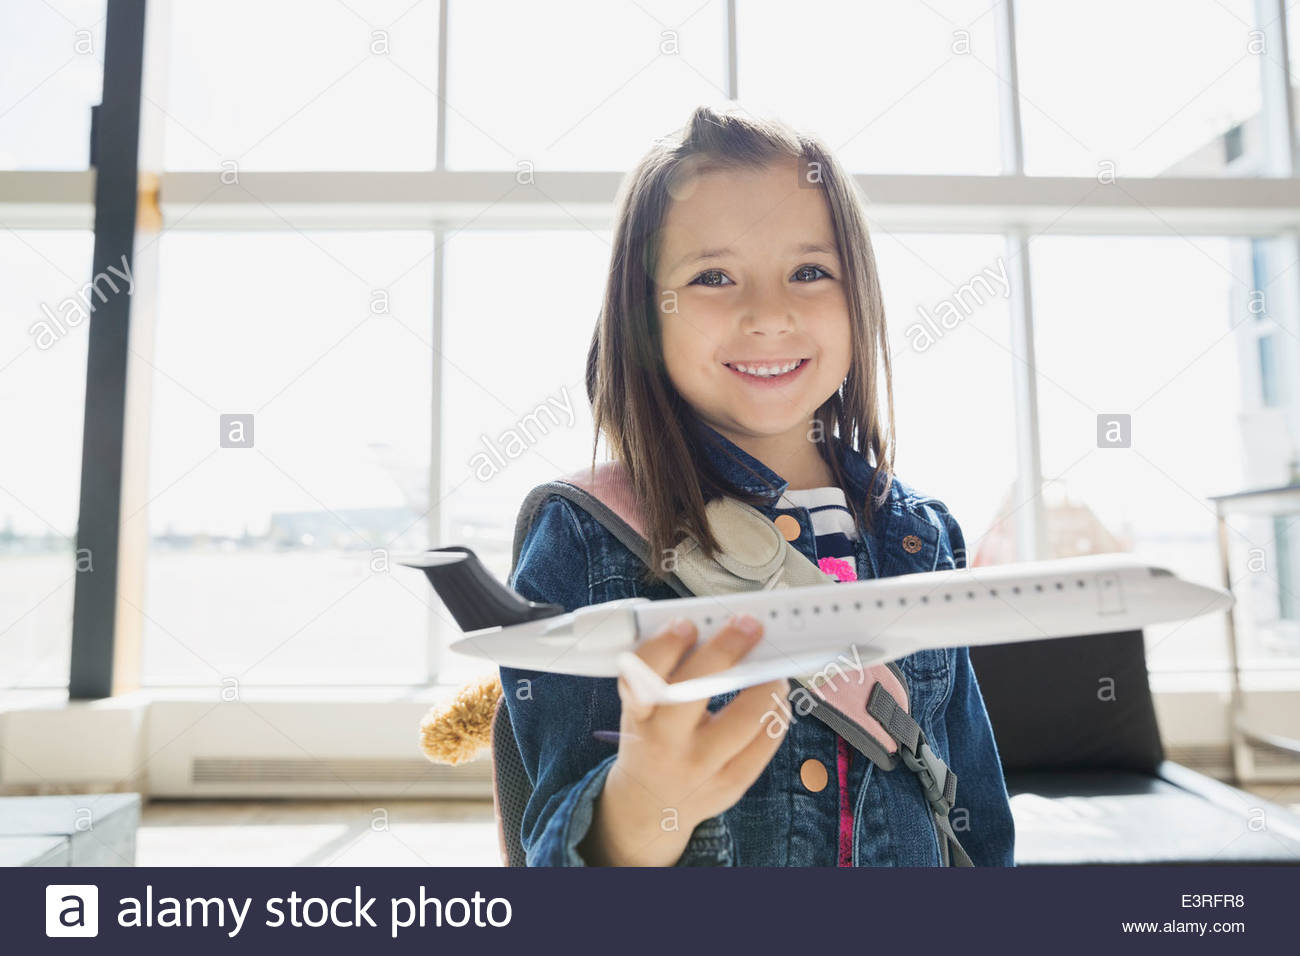 Girl playing with toy airplane in airport - Stock Image